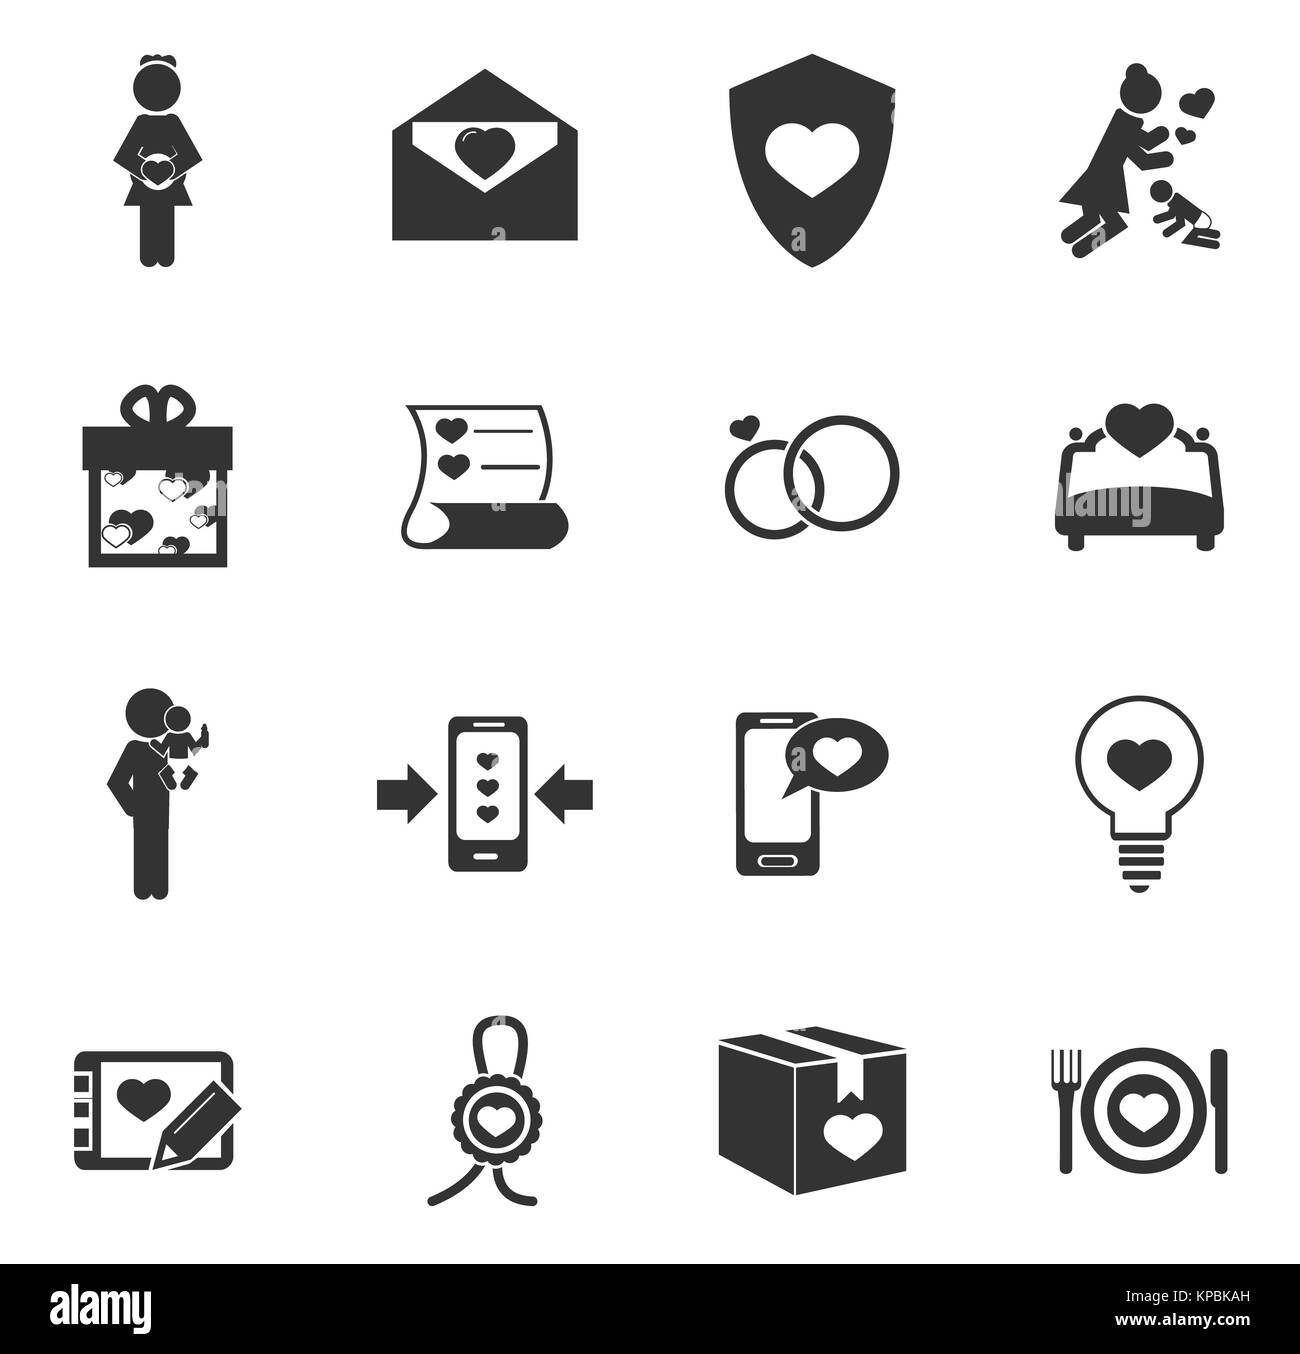 Valentine day icons set - Stock Image